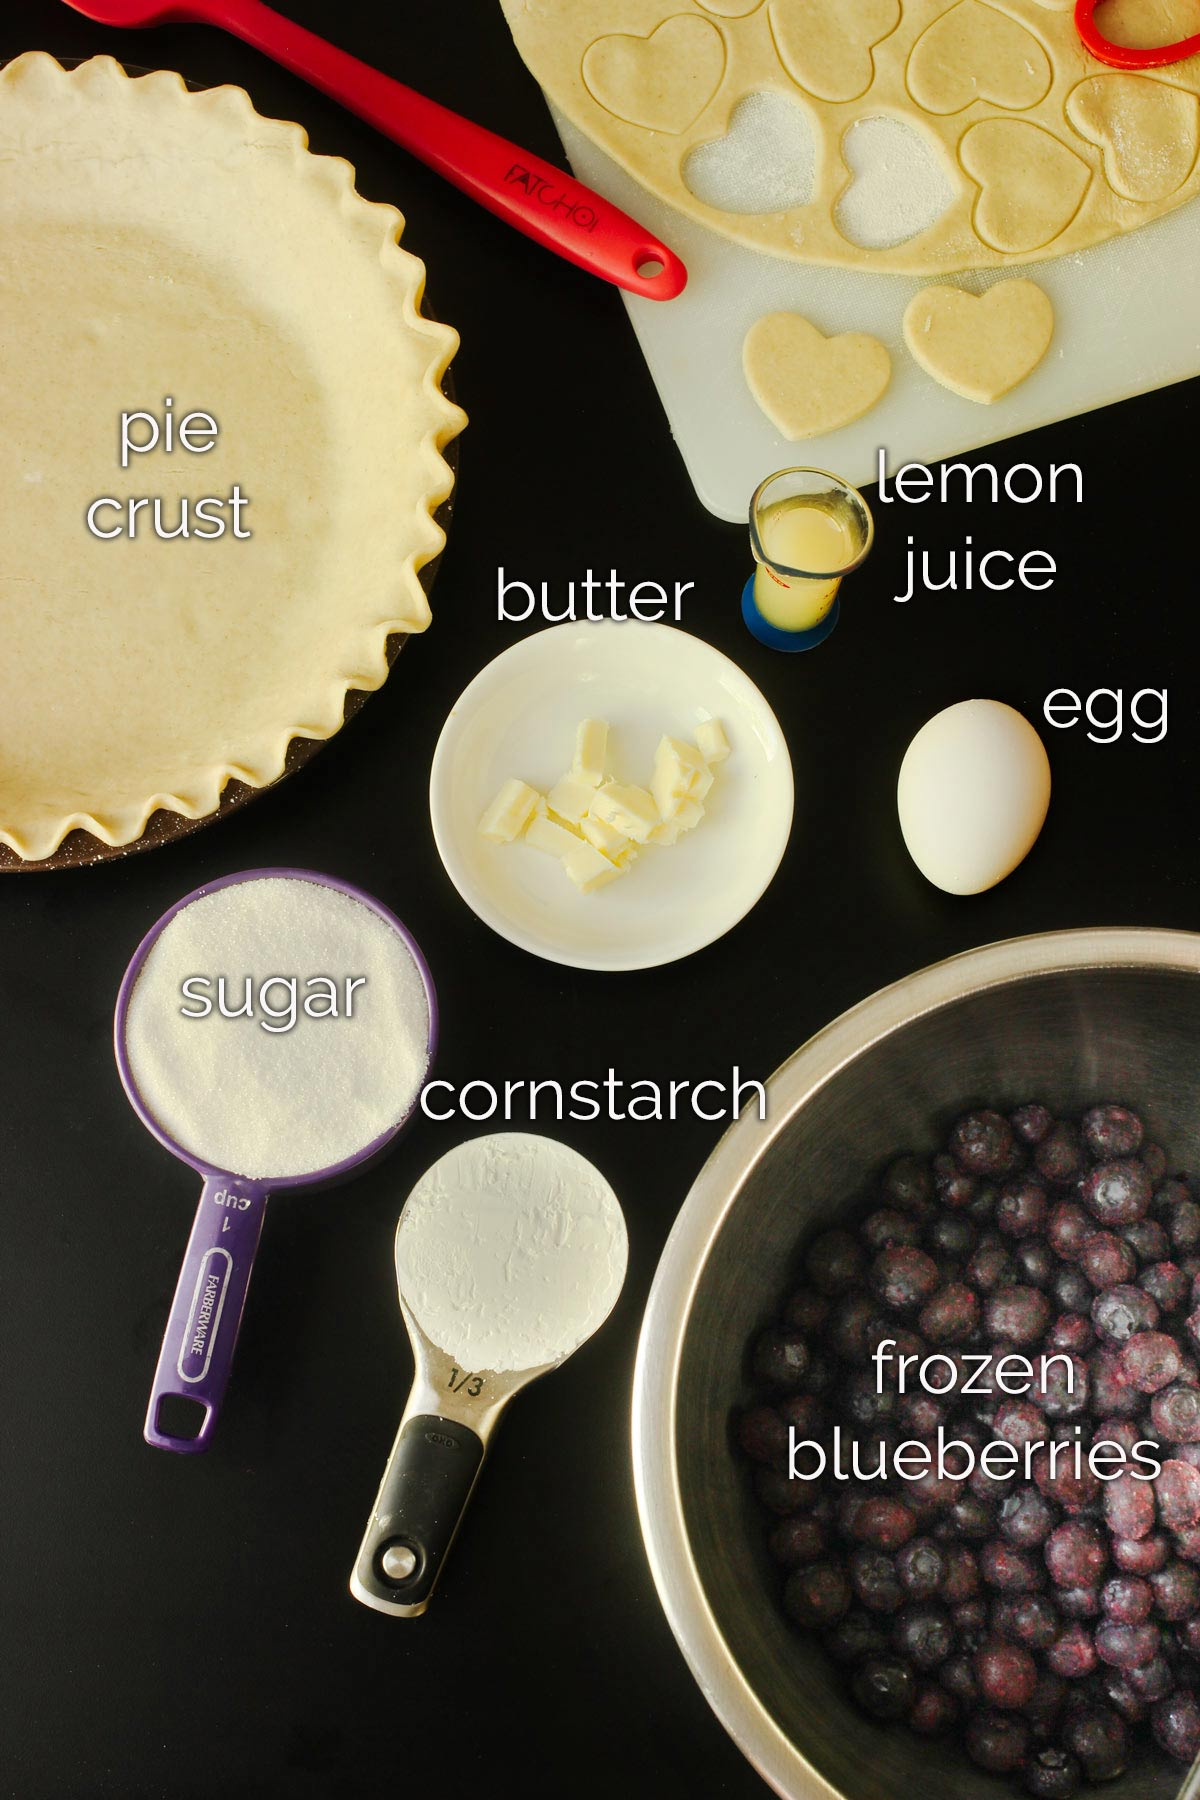 ingredients for blueberry pie laid on table.